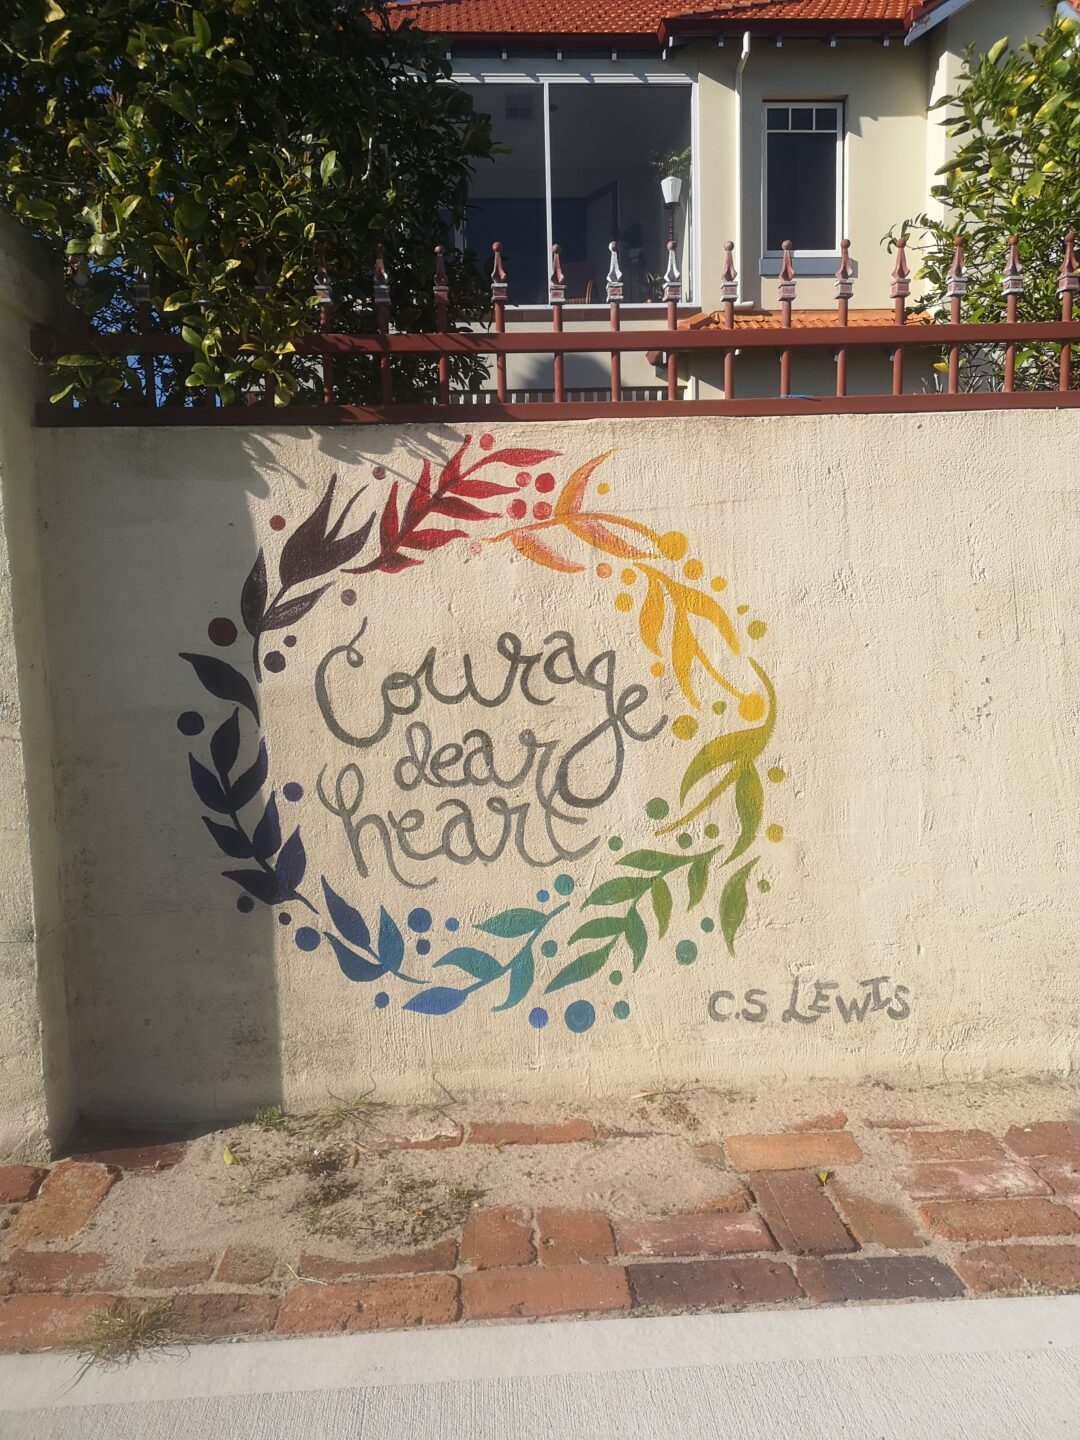 A daytime scene, with a concrete wall in front of a residential property. On the wall is stencilled in rainbow colours a wreath, with cursive text within reading 'Courage dear Heart' and an attribution to C.S. Lewis in the bottom right.